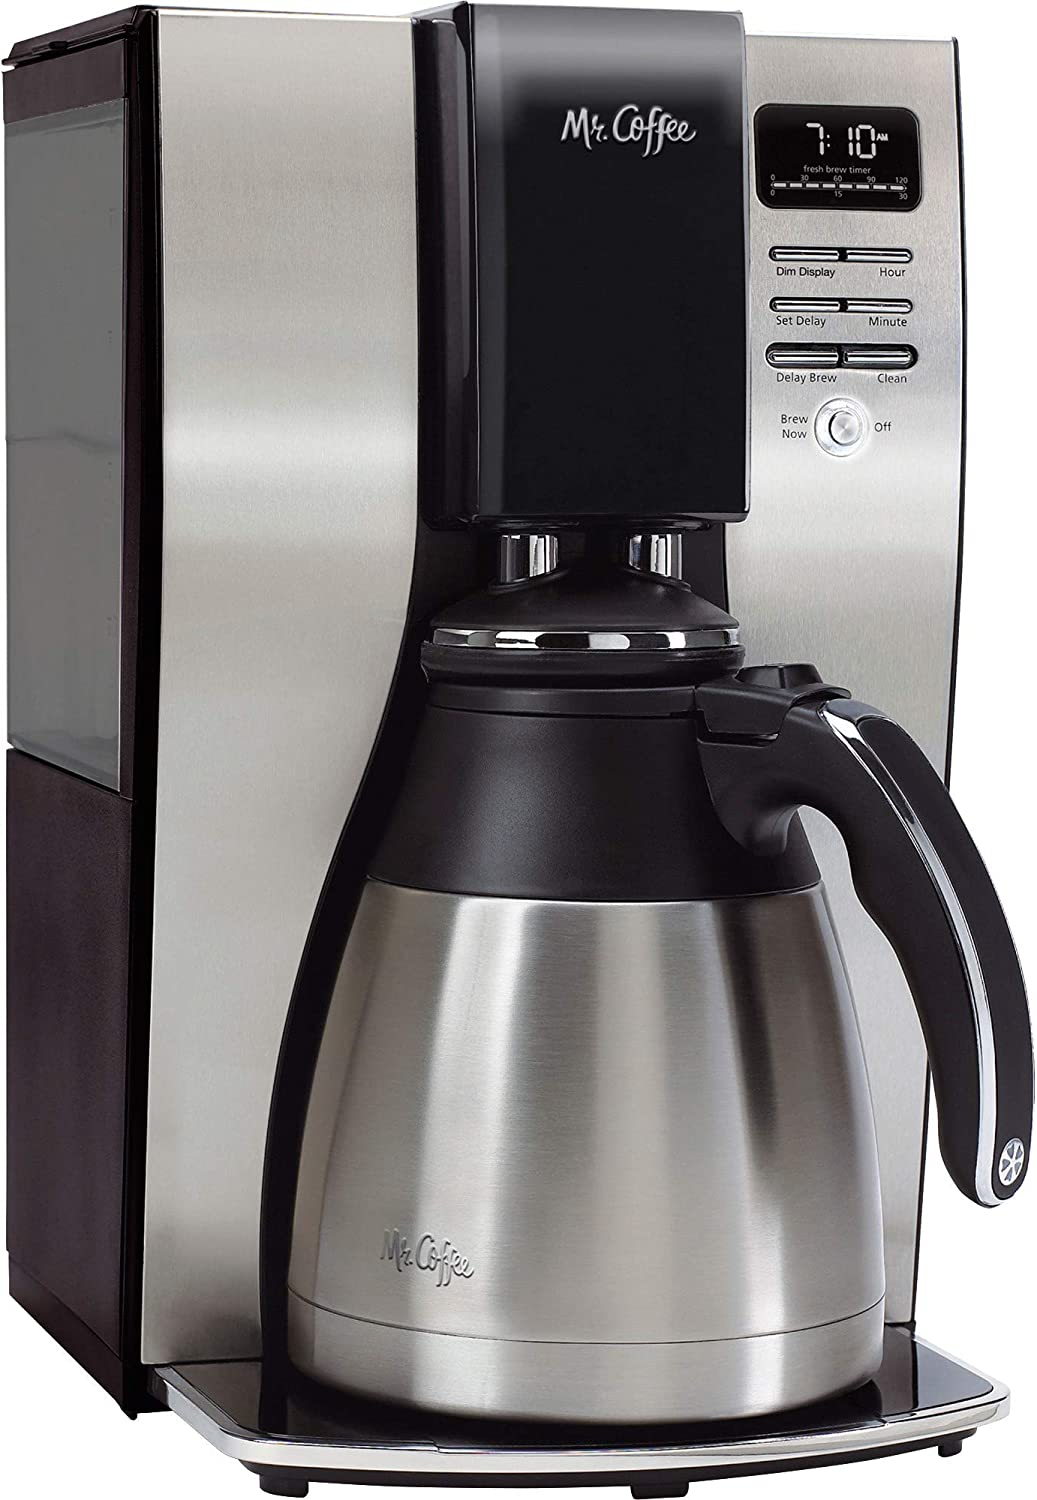 Mr. Coffee 10 Cup Coffee Maker | Optimal Brew Thermal System: Drip Coffeemakers: Kitchen & Dining